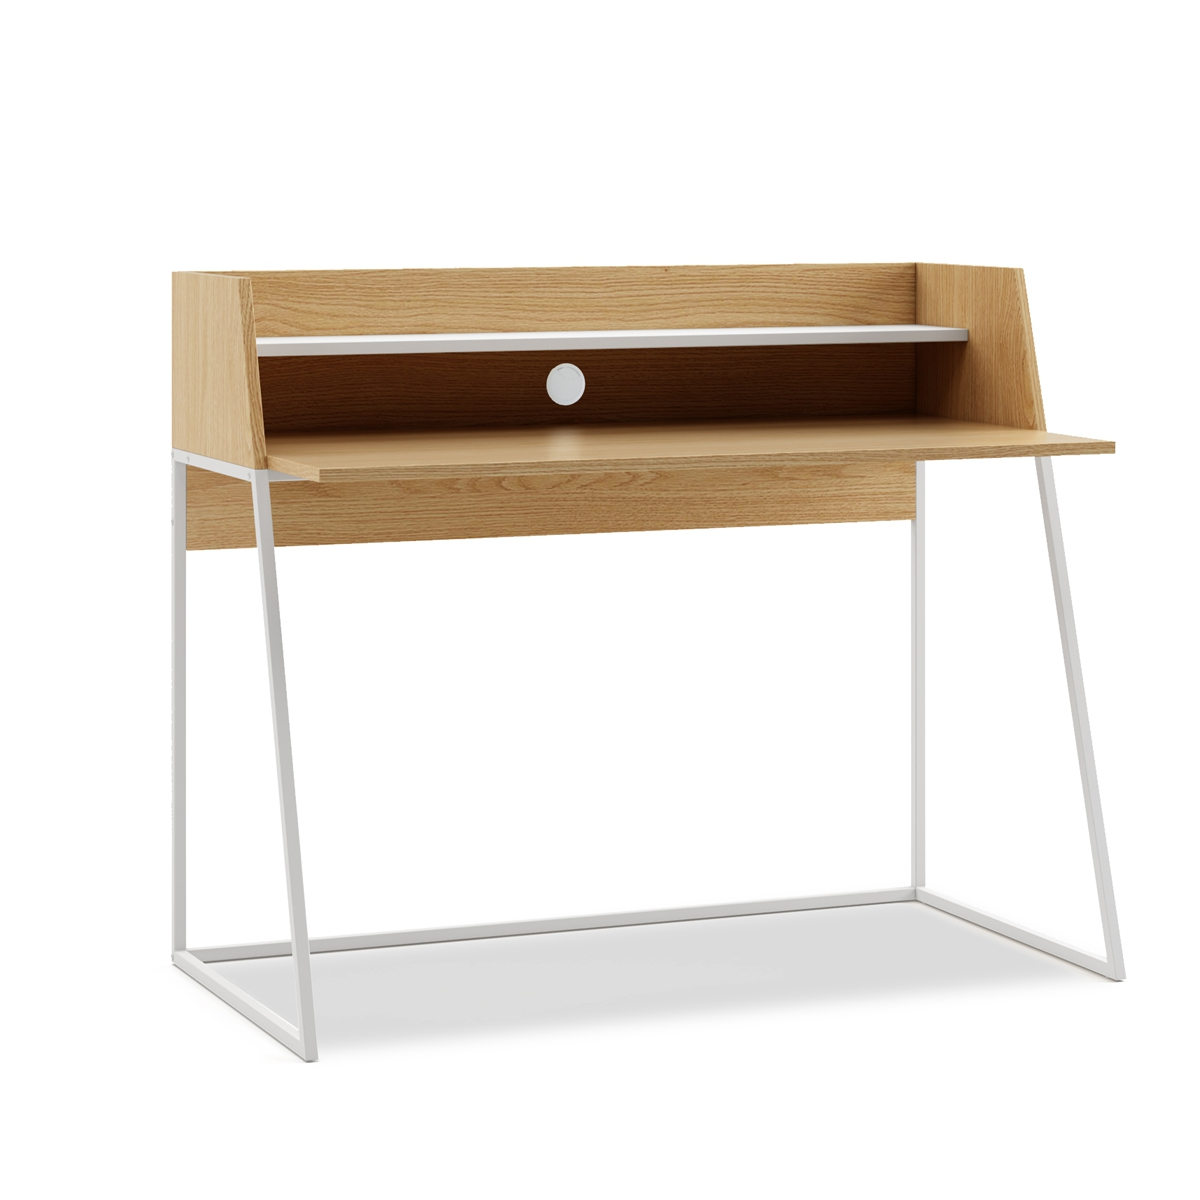 Table Desk Versatil For Receiver Office Dispatch Model KALA Custom Wood Finishes Mdf And White 120x62x89cm